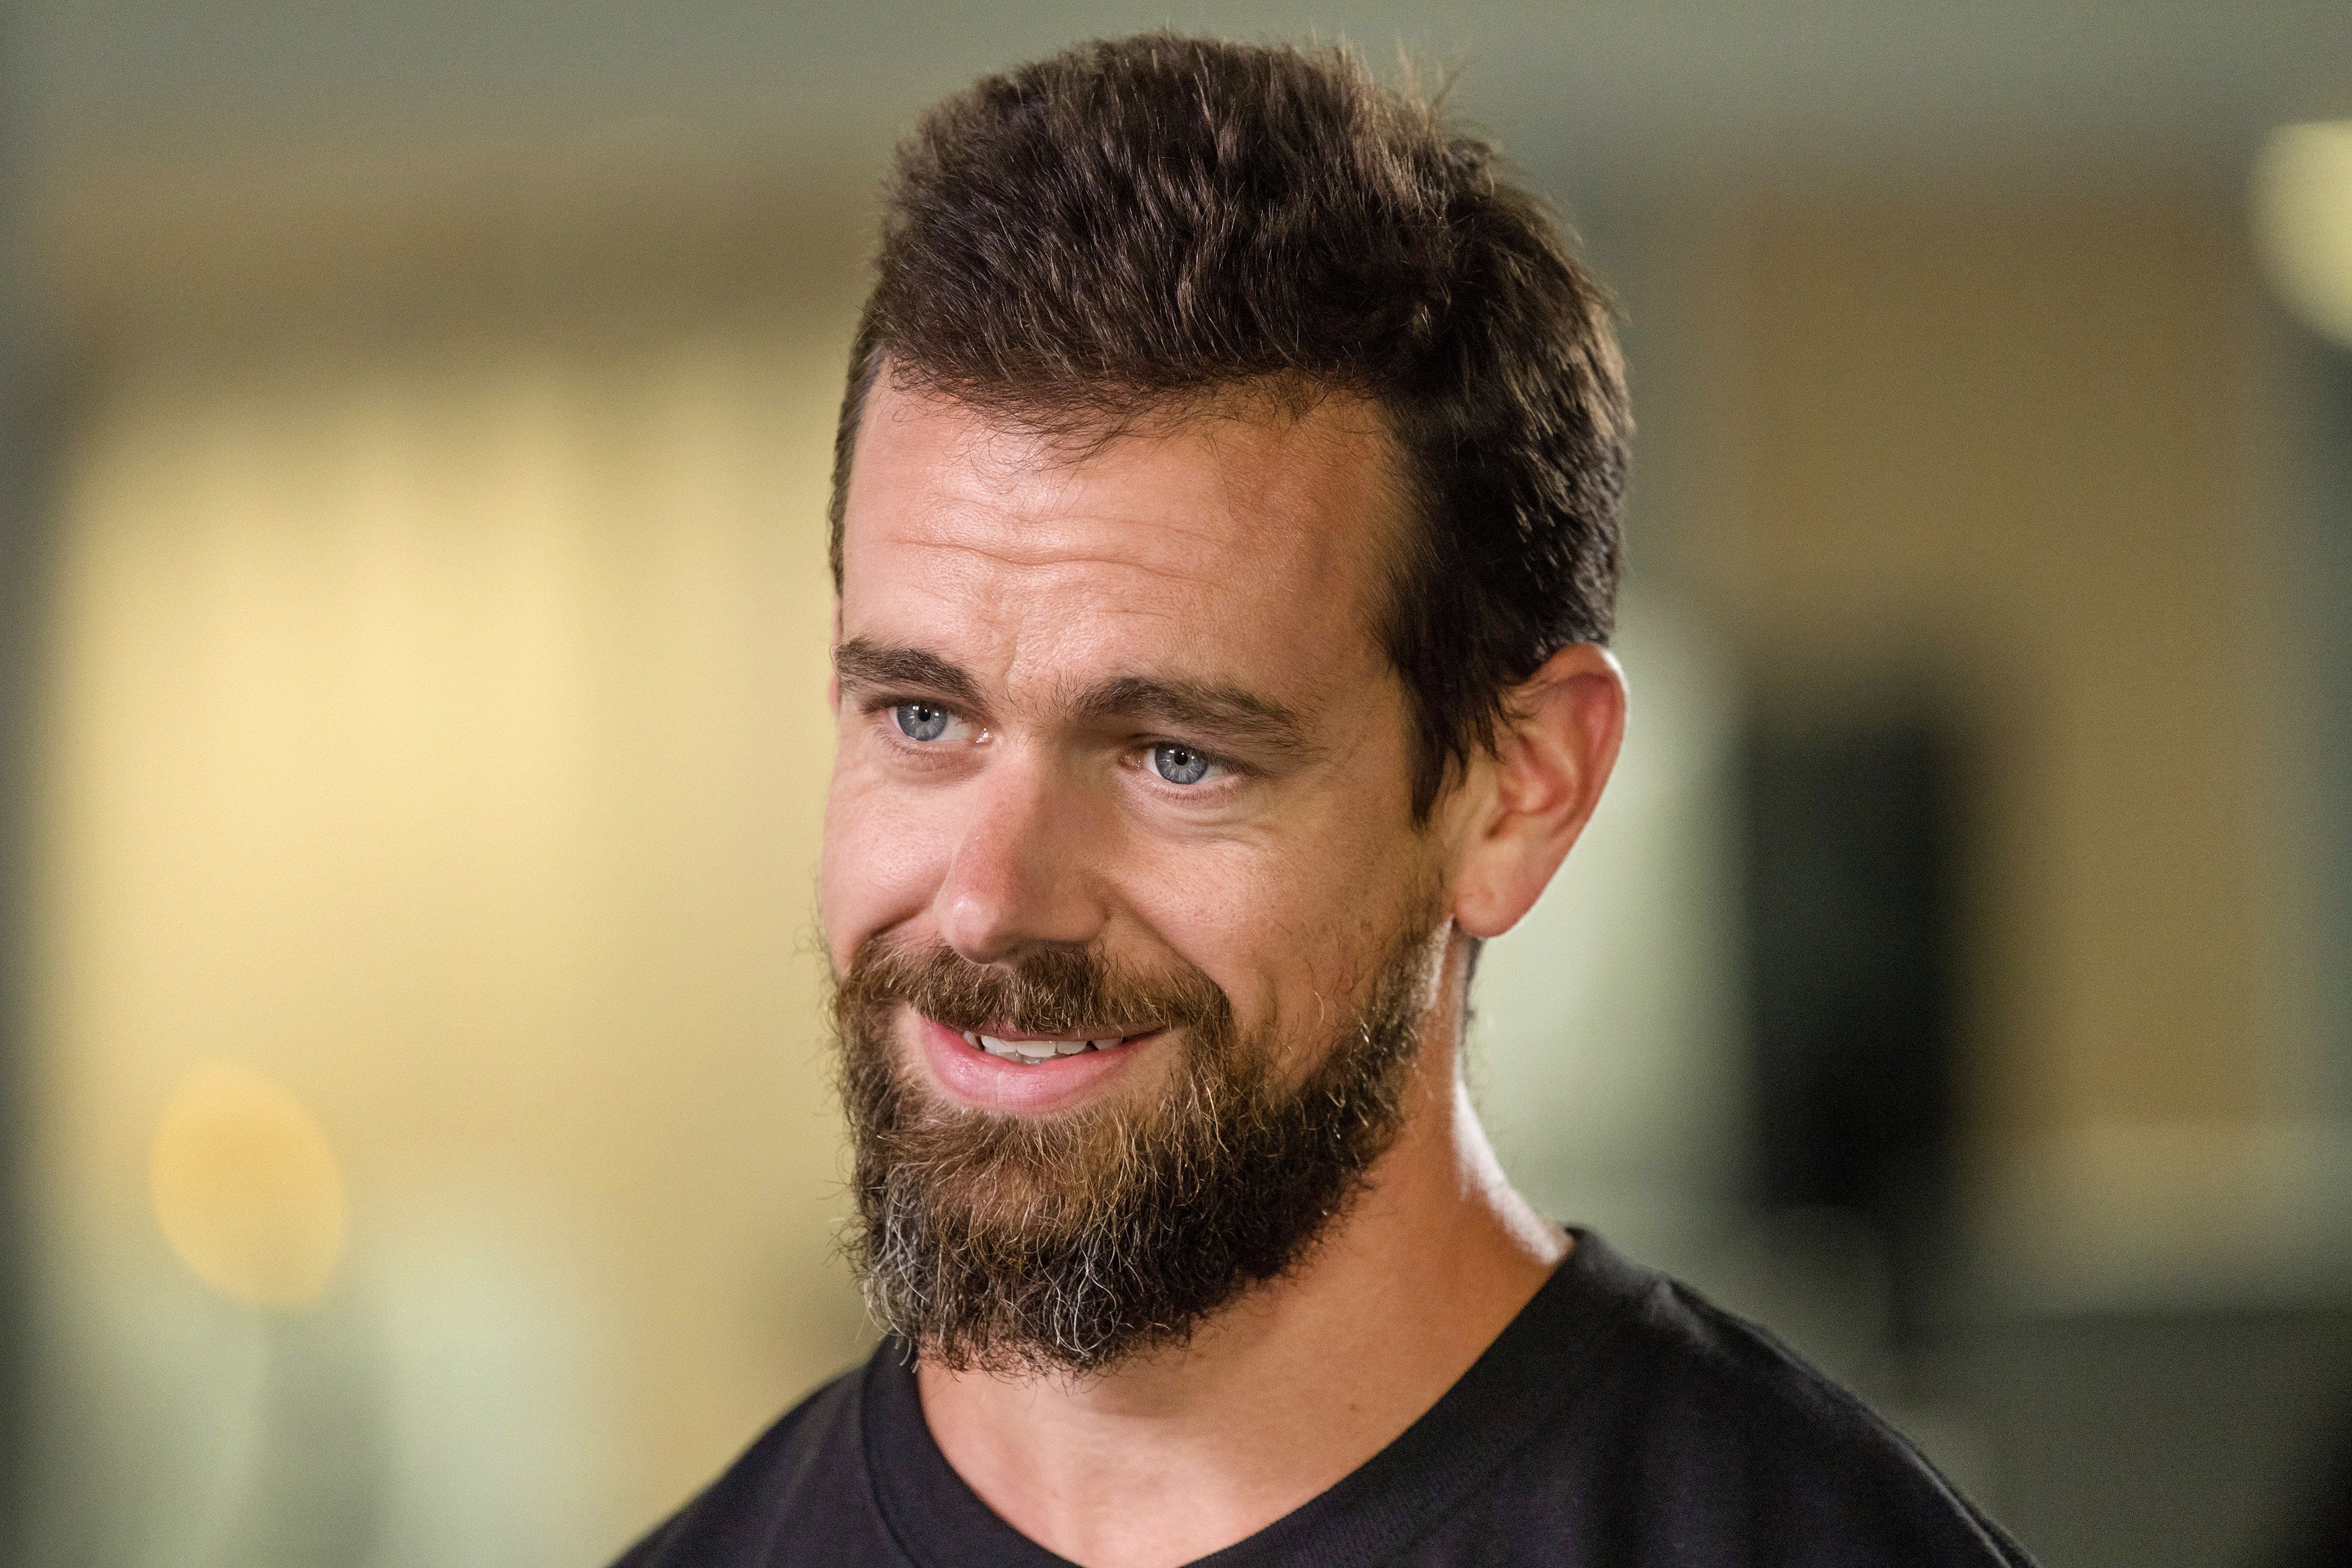 Twitter chief executive and co-founder Jack Dorsey has defended the platform for not banning Alex